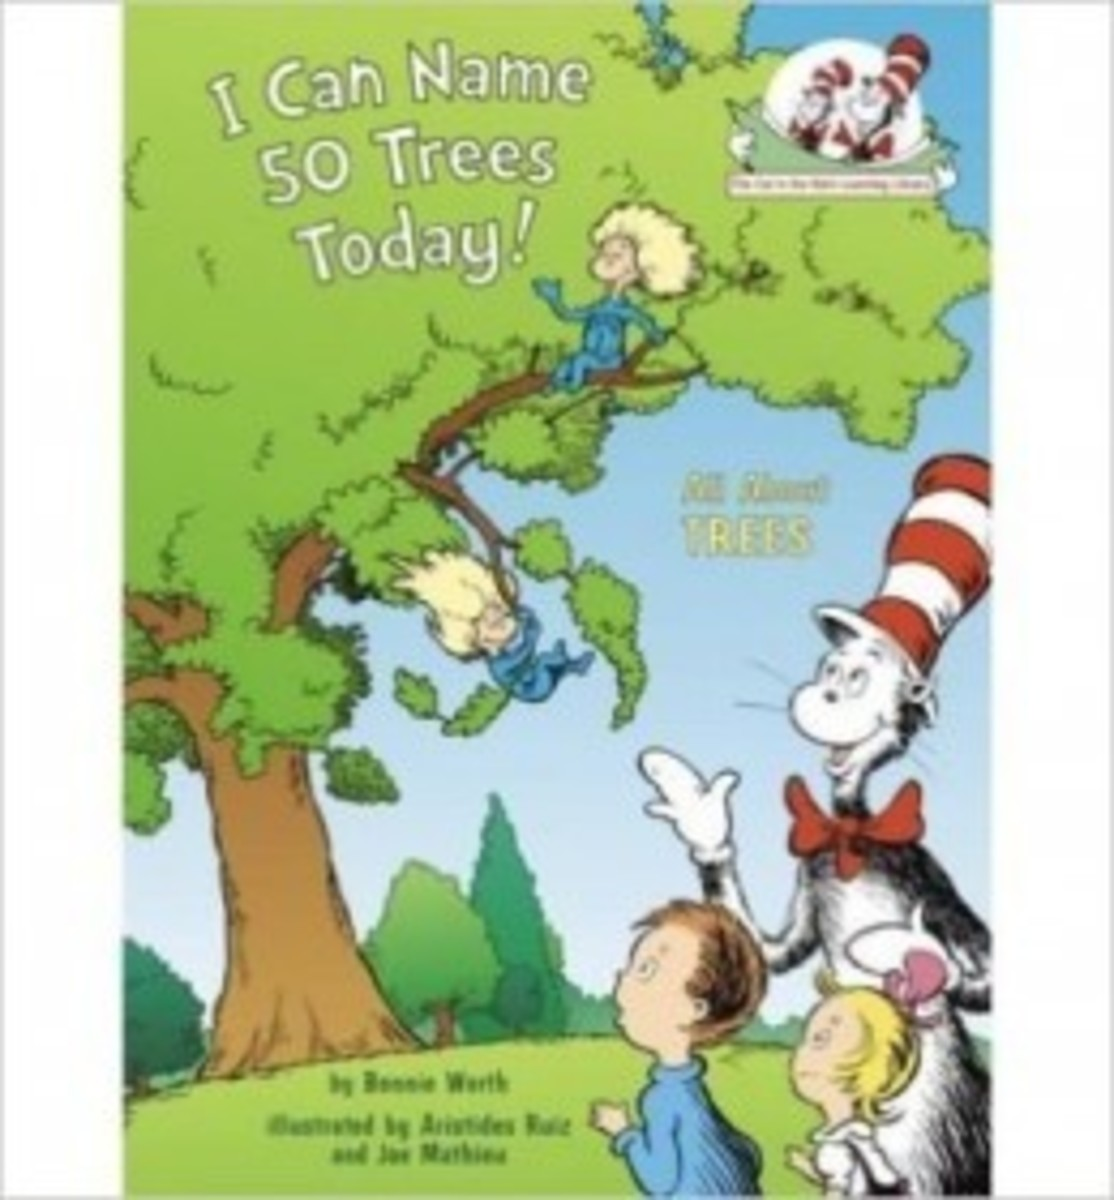 I Can Name 50 Trees Today!: All About Trees (Cat in the Hat's Learning Library) by Bonnie Worth was our favorite picture book that goes over what aspects to look for when identifying trees, including deciduous trees.